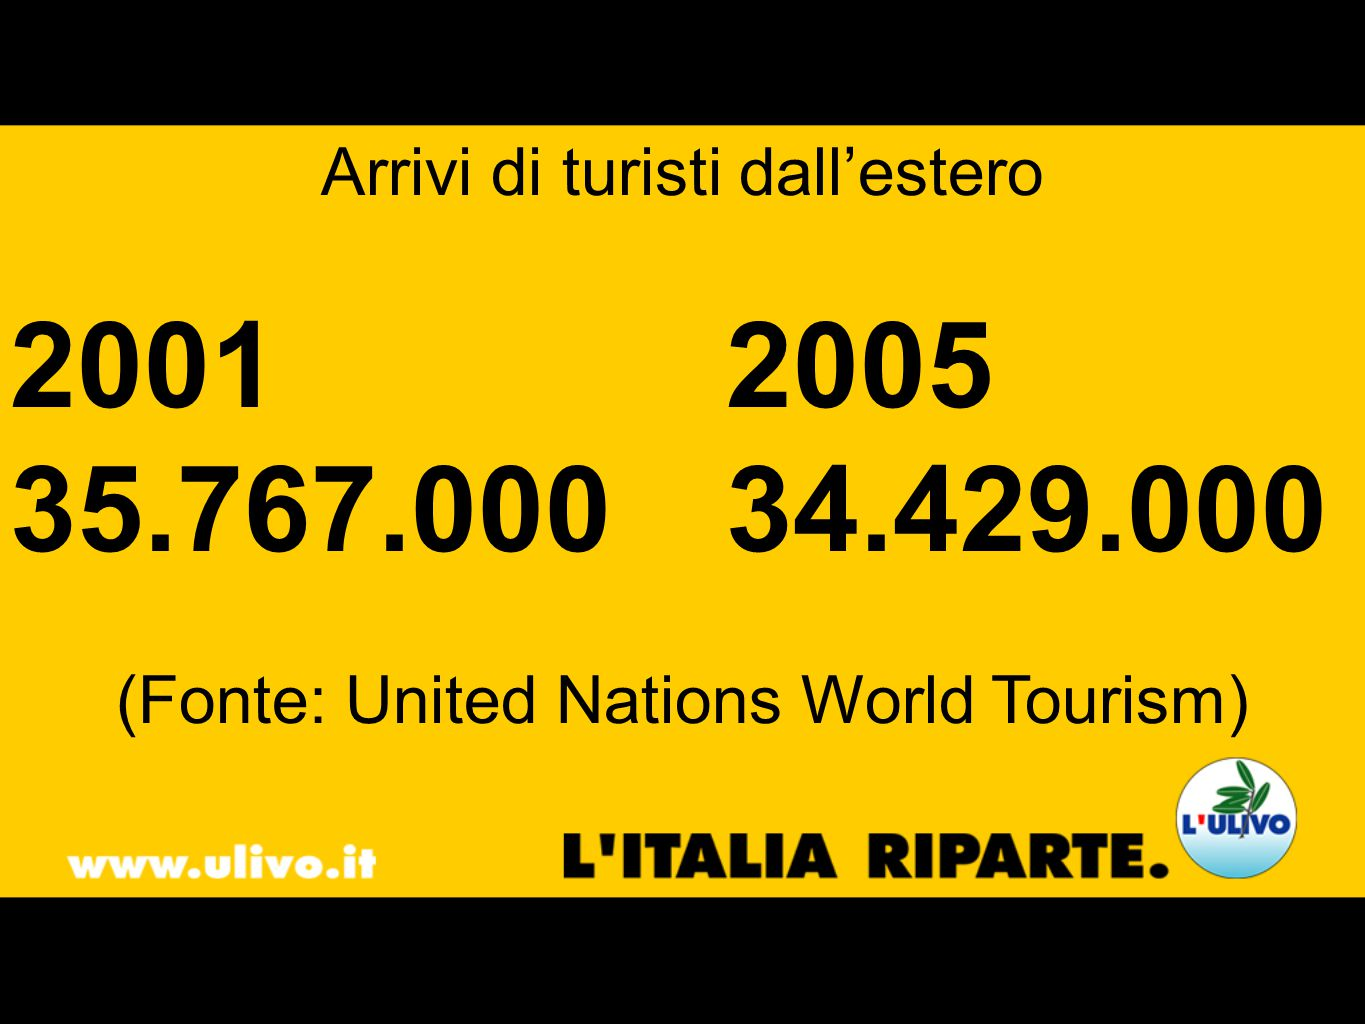 Arrivi di turisti dallestero 2001 2005 35.767.000 34.429.000 (Fonte: United Nations World Tourism)